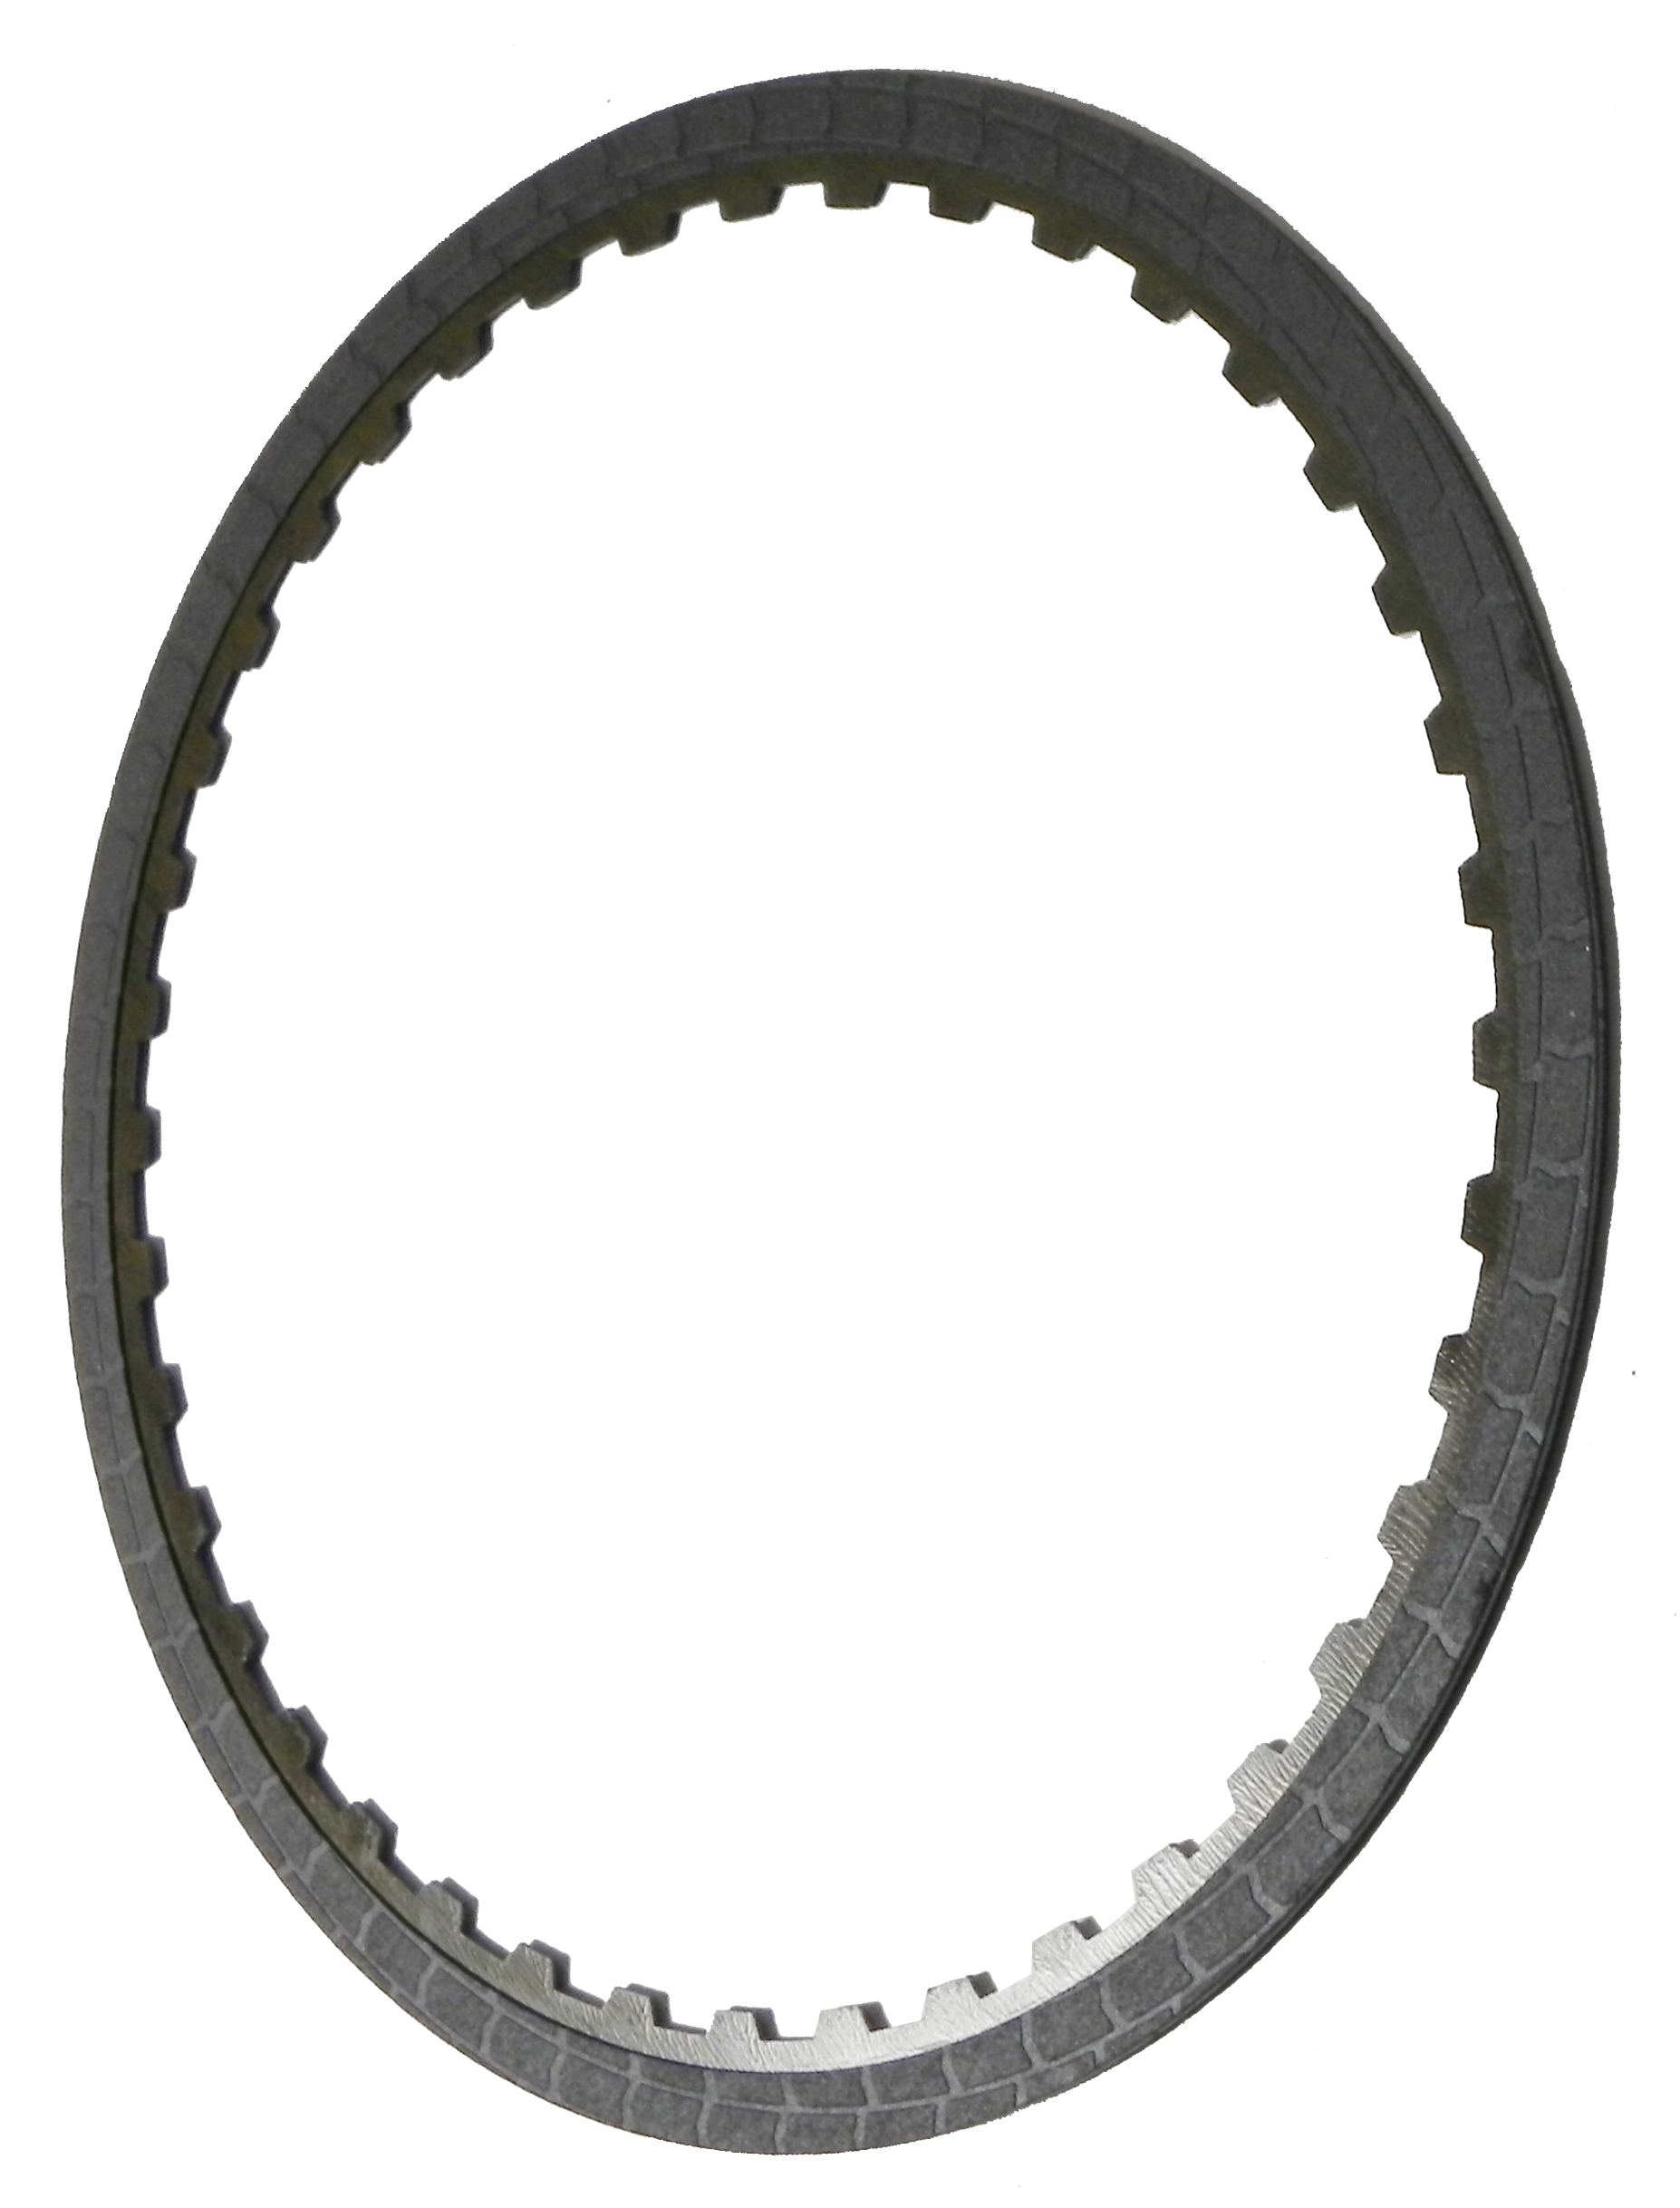 RH560690 | 2009-ON Friction Clutch Plate (HT) Hybrid Technology Low, Reverse Proprietary High Energy (HT)